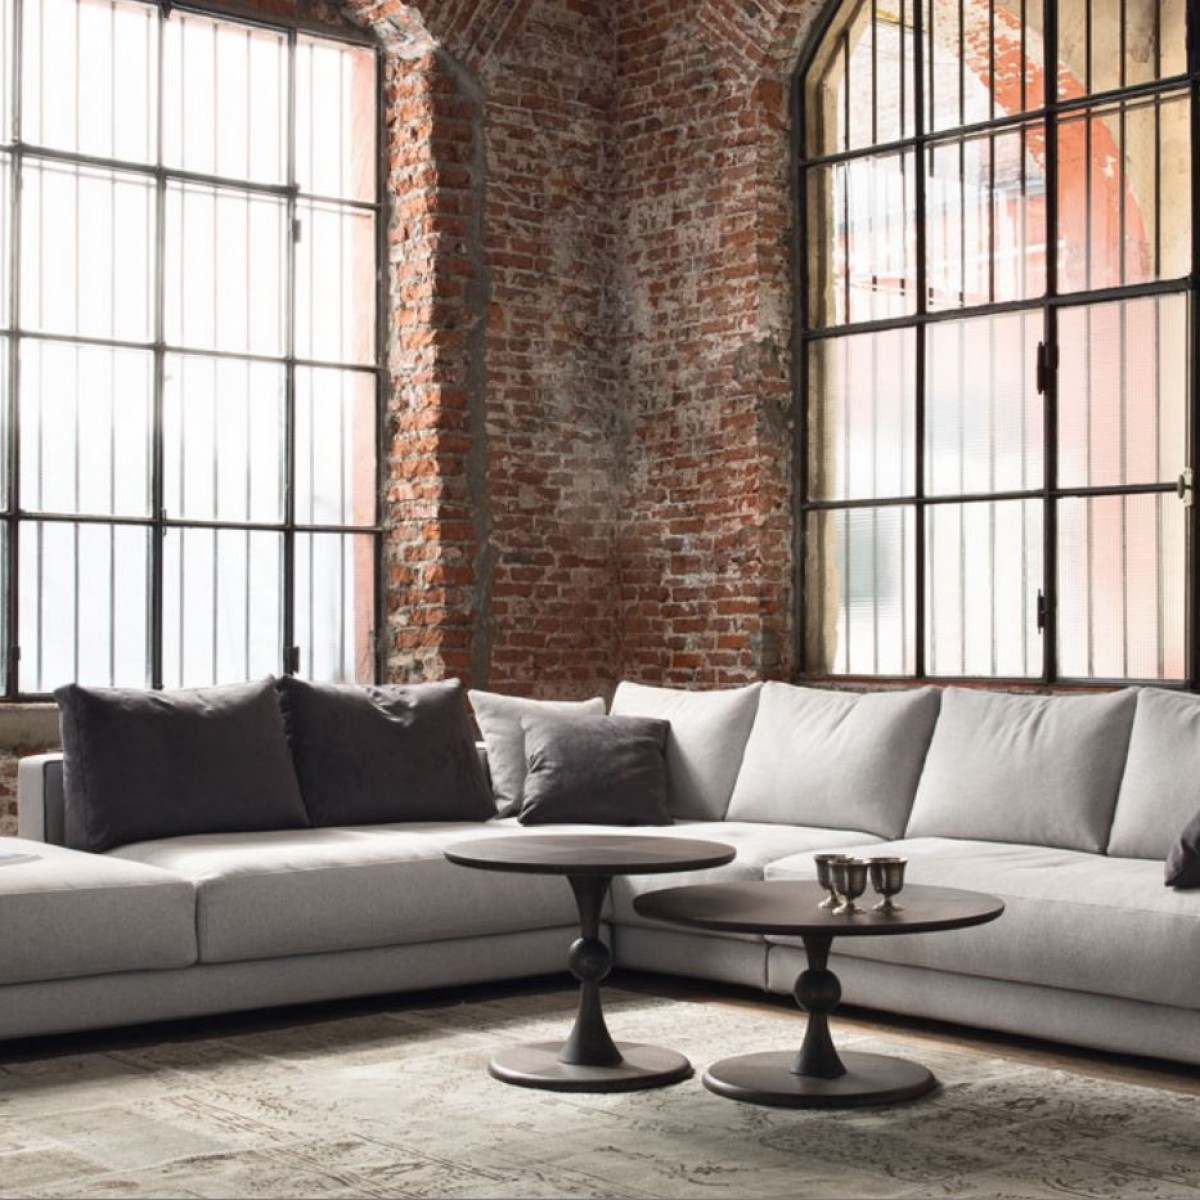 Ashley Furniture Sectional Sofa | Large Sectional Sofas | Sectional Couches Cheap